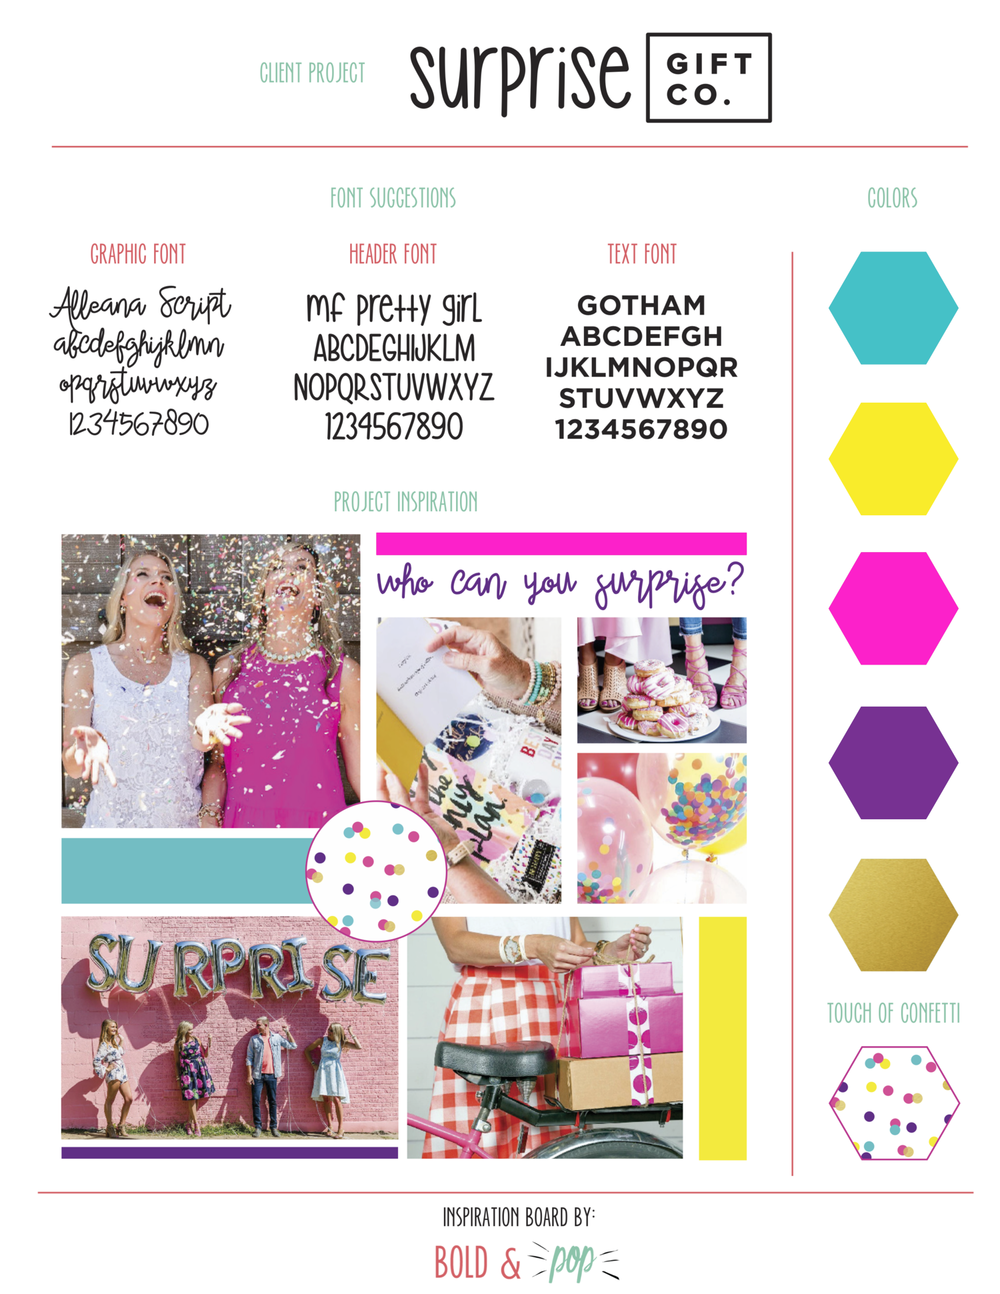 1d5c1de82d3 Bold   Pop   Surprise Gift Co. Squarespace Website Refresh